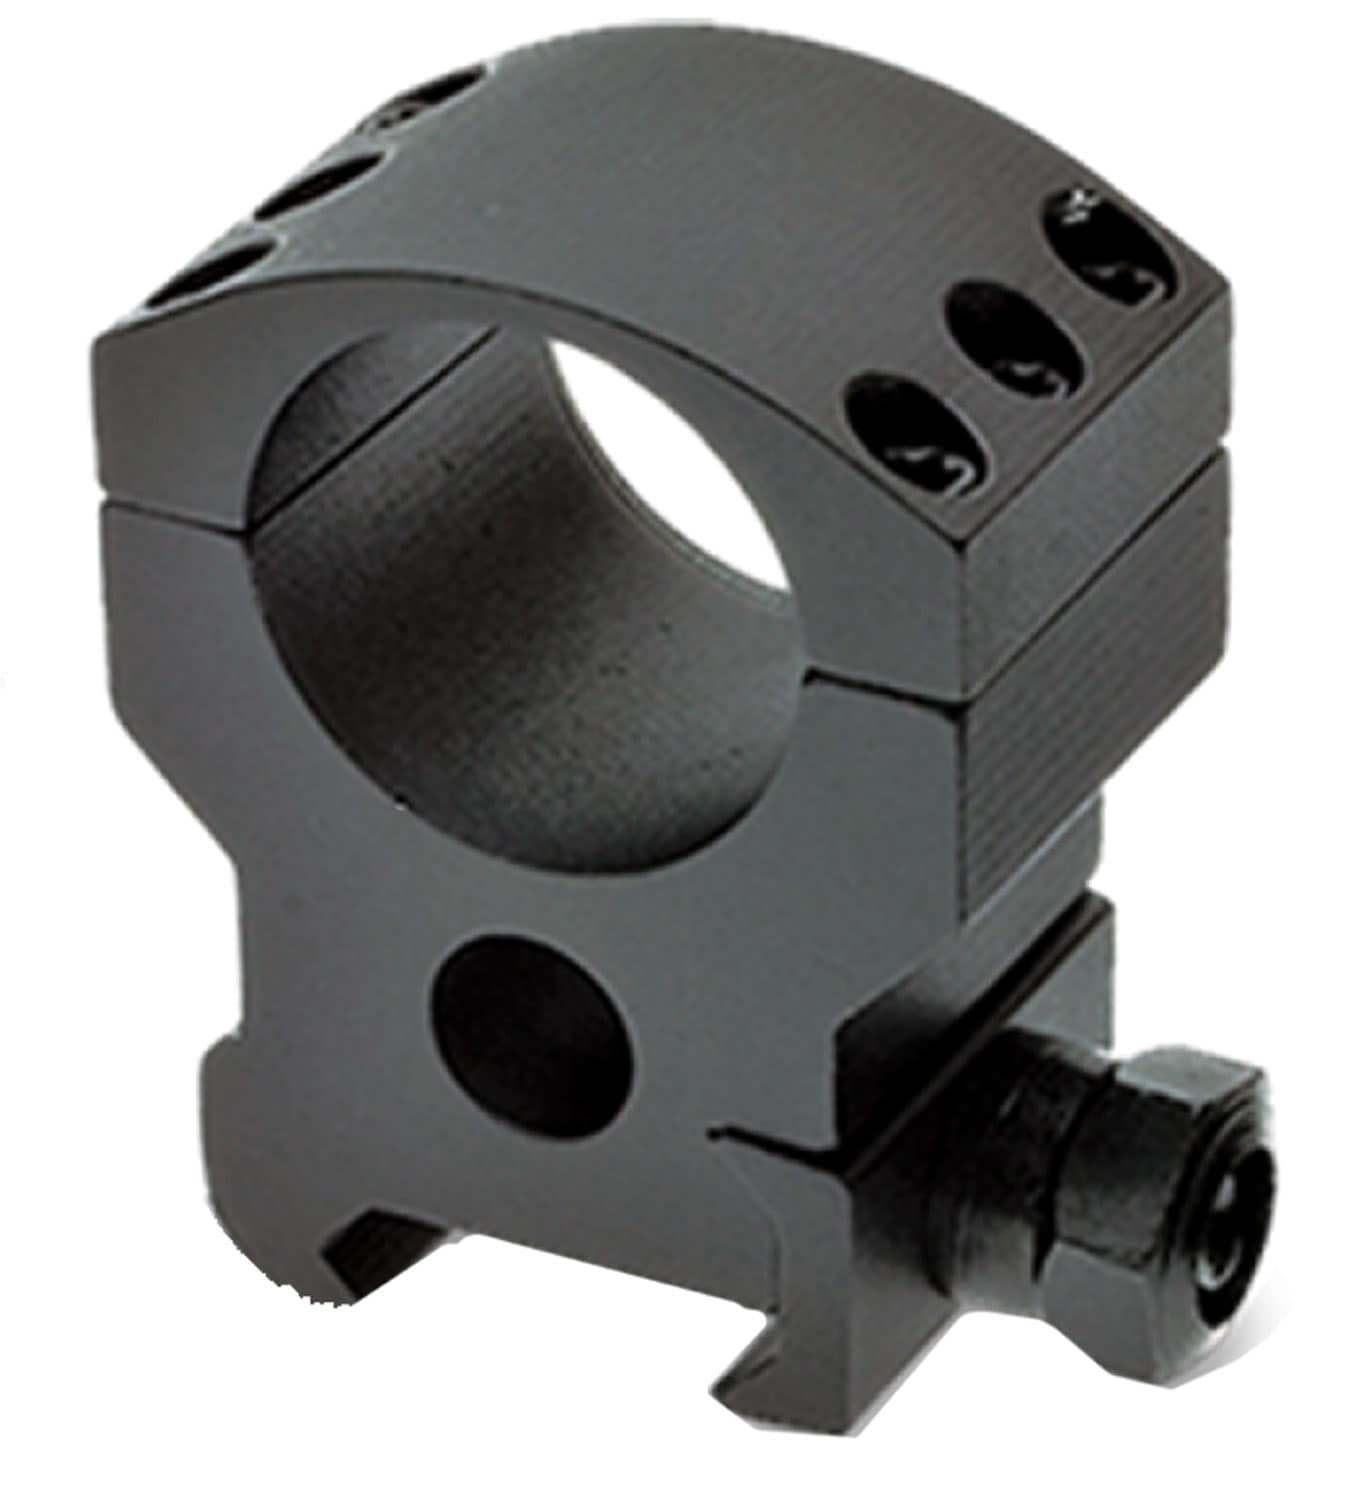 BURRIS XTREME TACTICAL SCOPE RING SET EXTRA HIGH 30 MM